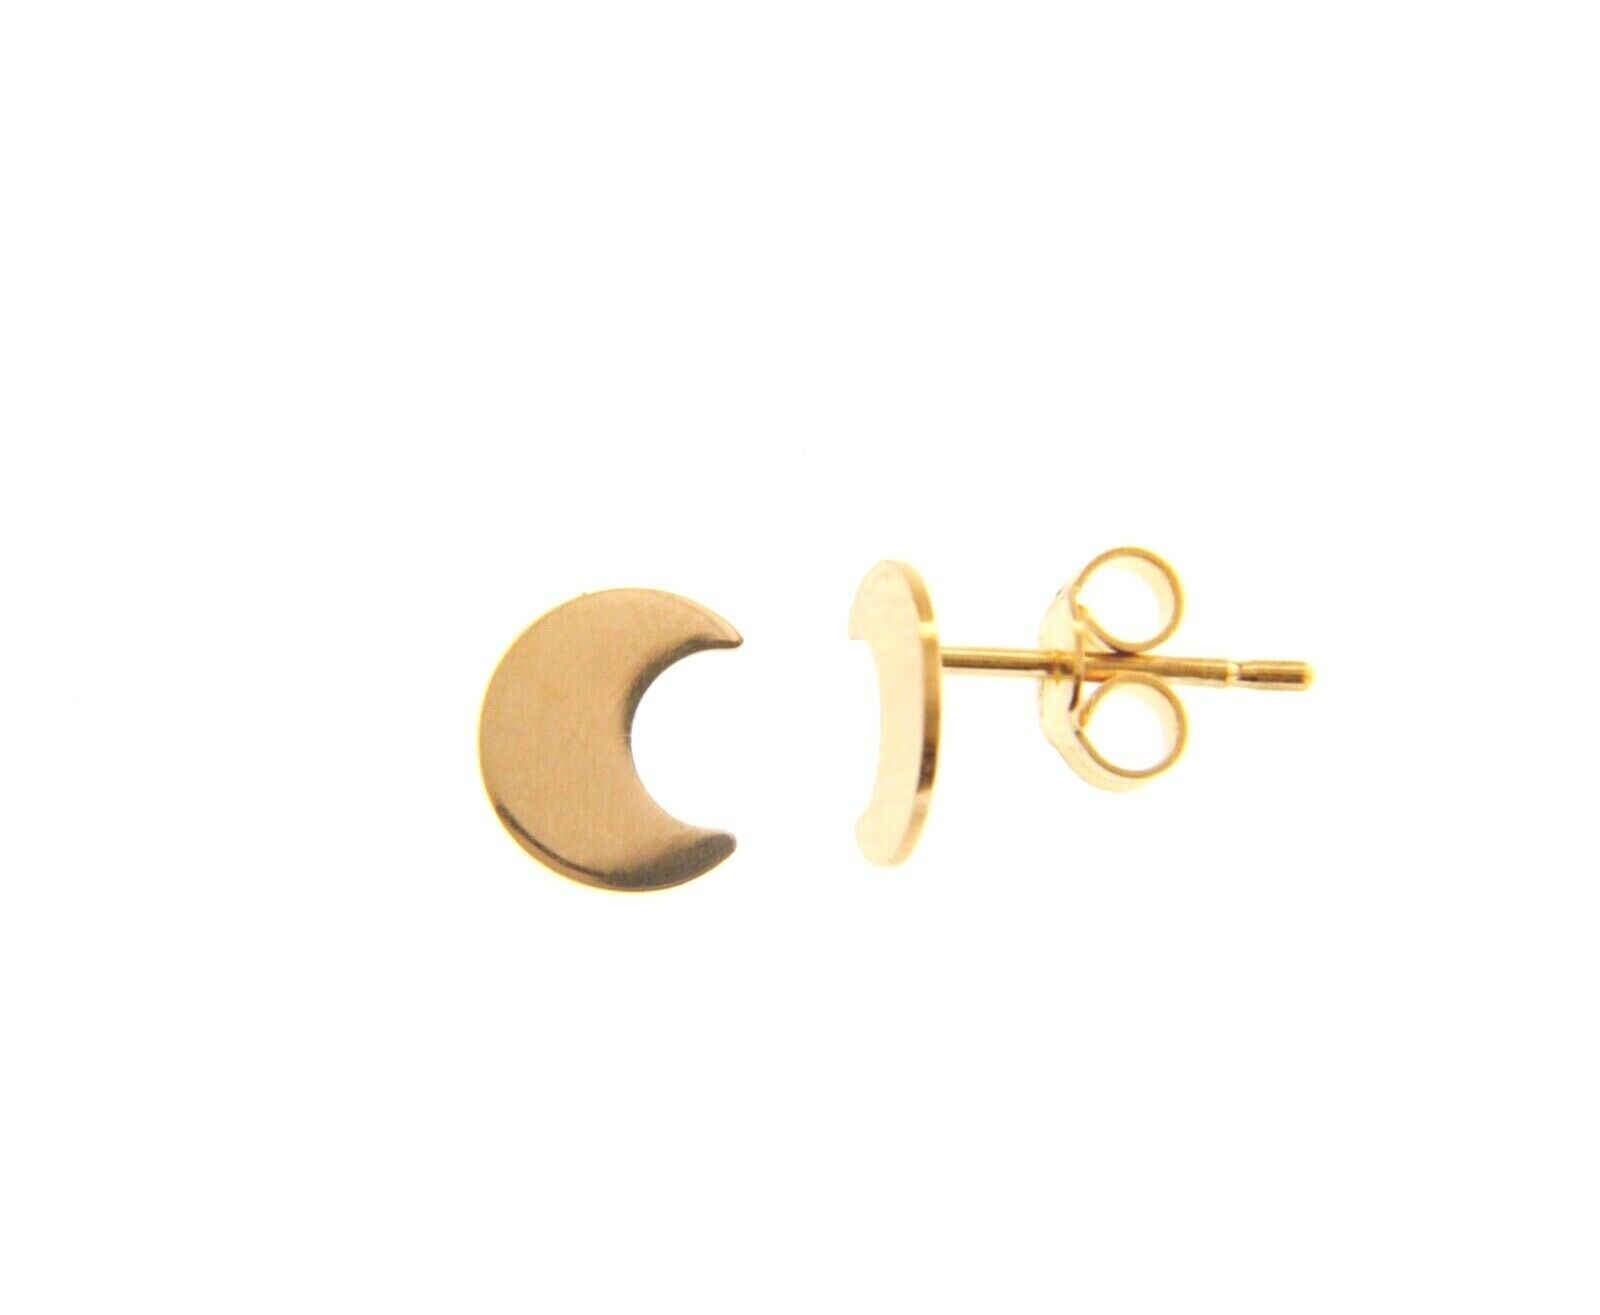 18K YELLOW GOLD EARRINGS SMALL FLAT MOON, SHINY, SMOOTH, 5mm, MADE IN ITALY